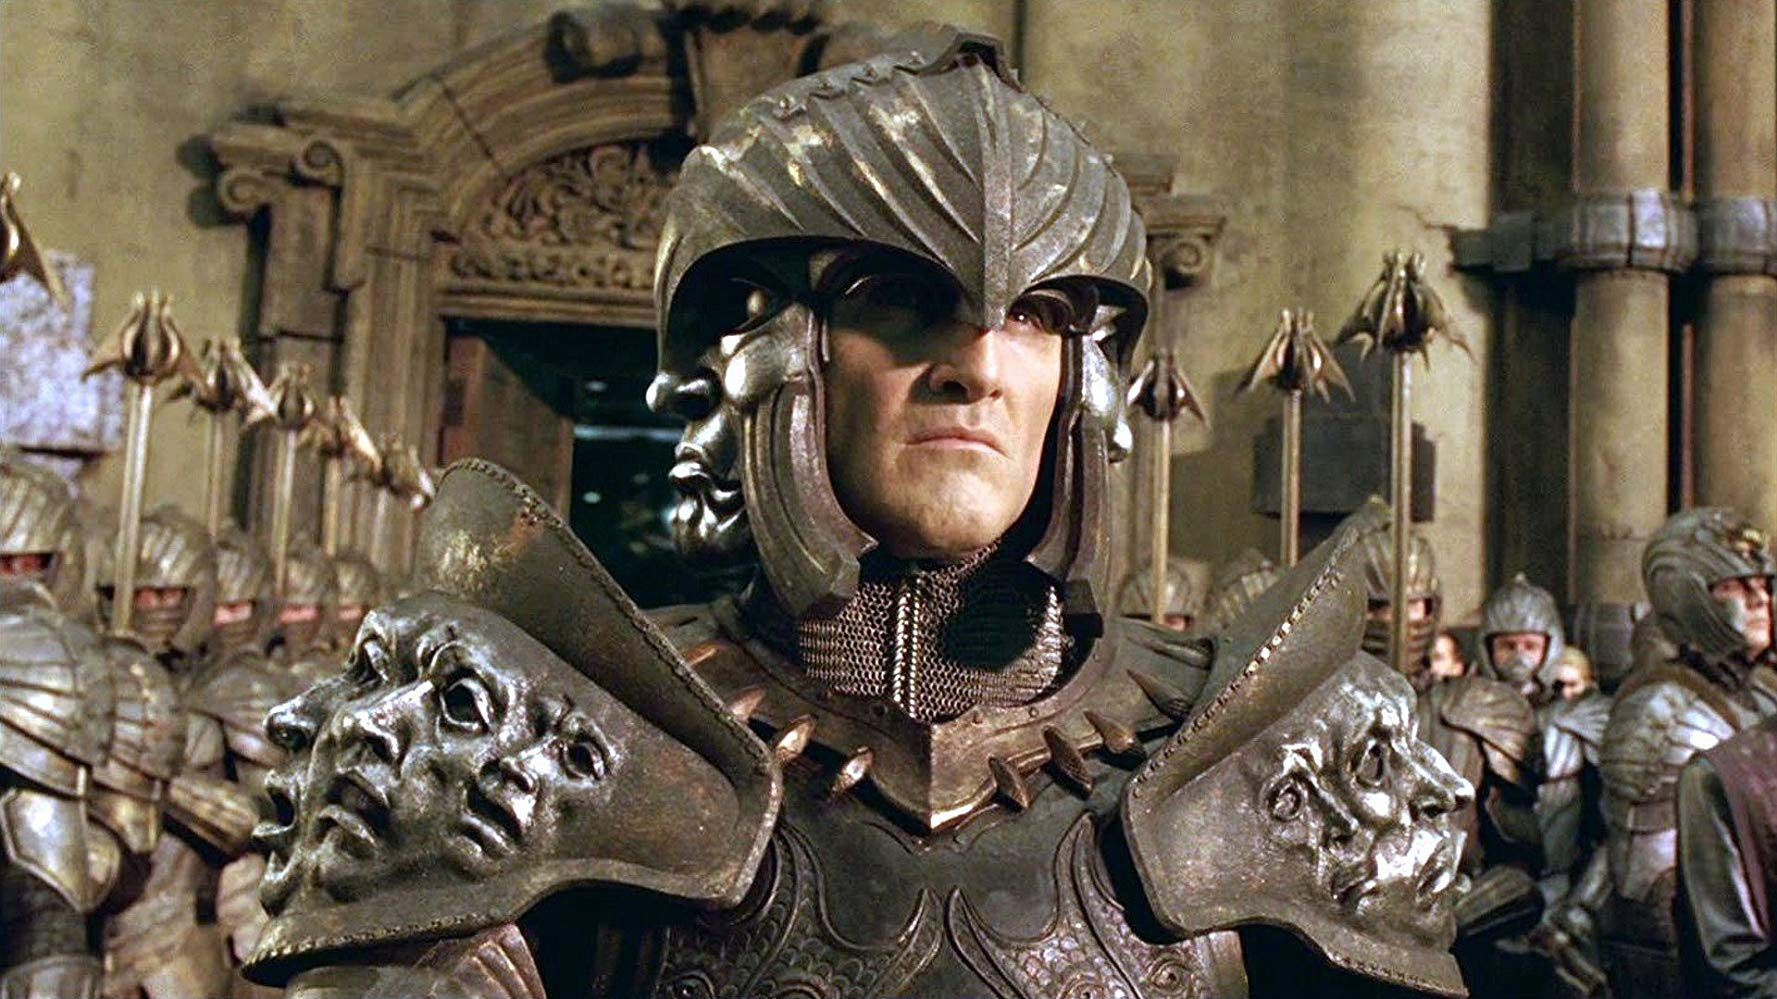 Colm Feore as Lord Marshal, leader of the Necromongers in The Chronicles of Riddick (2004)